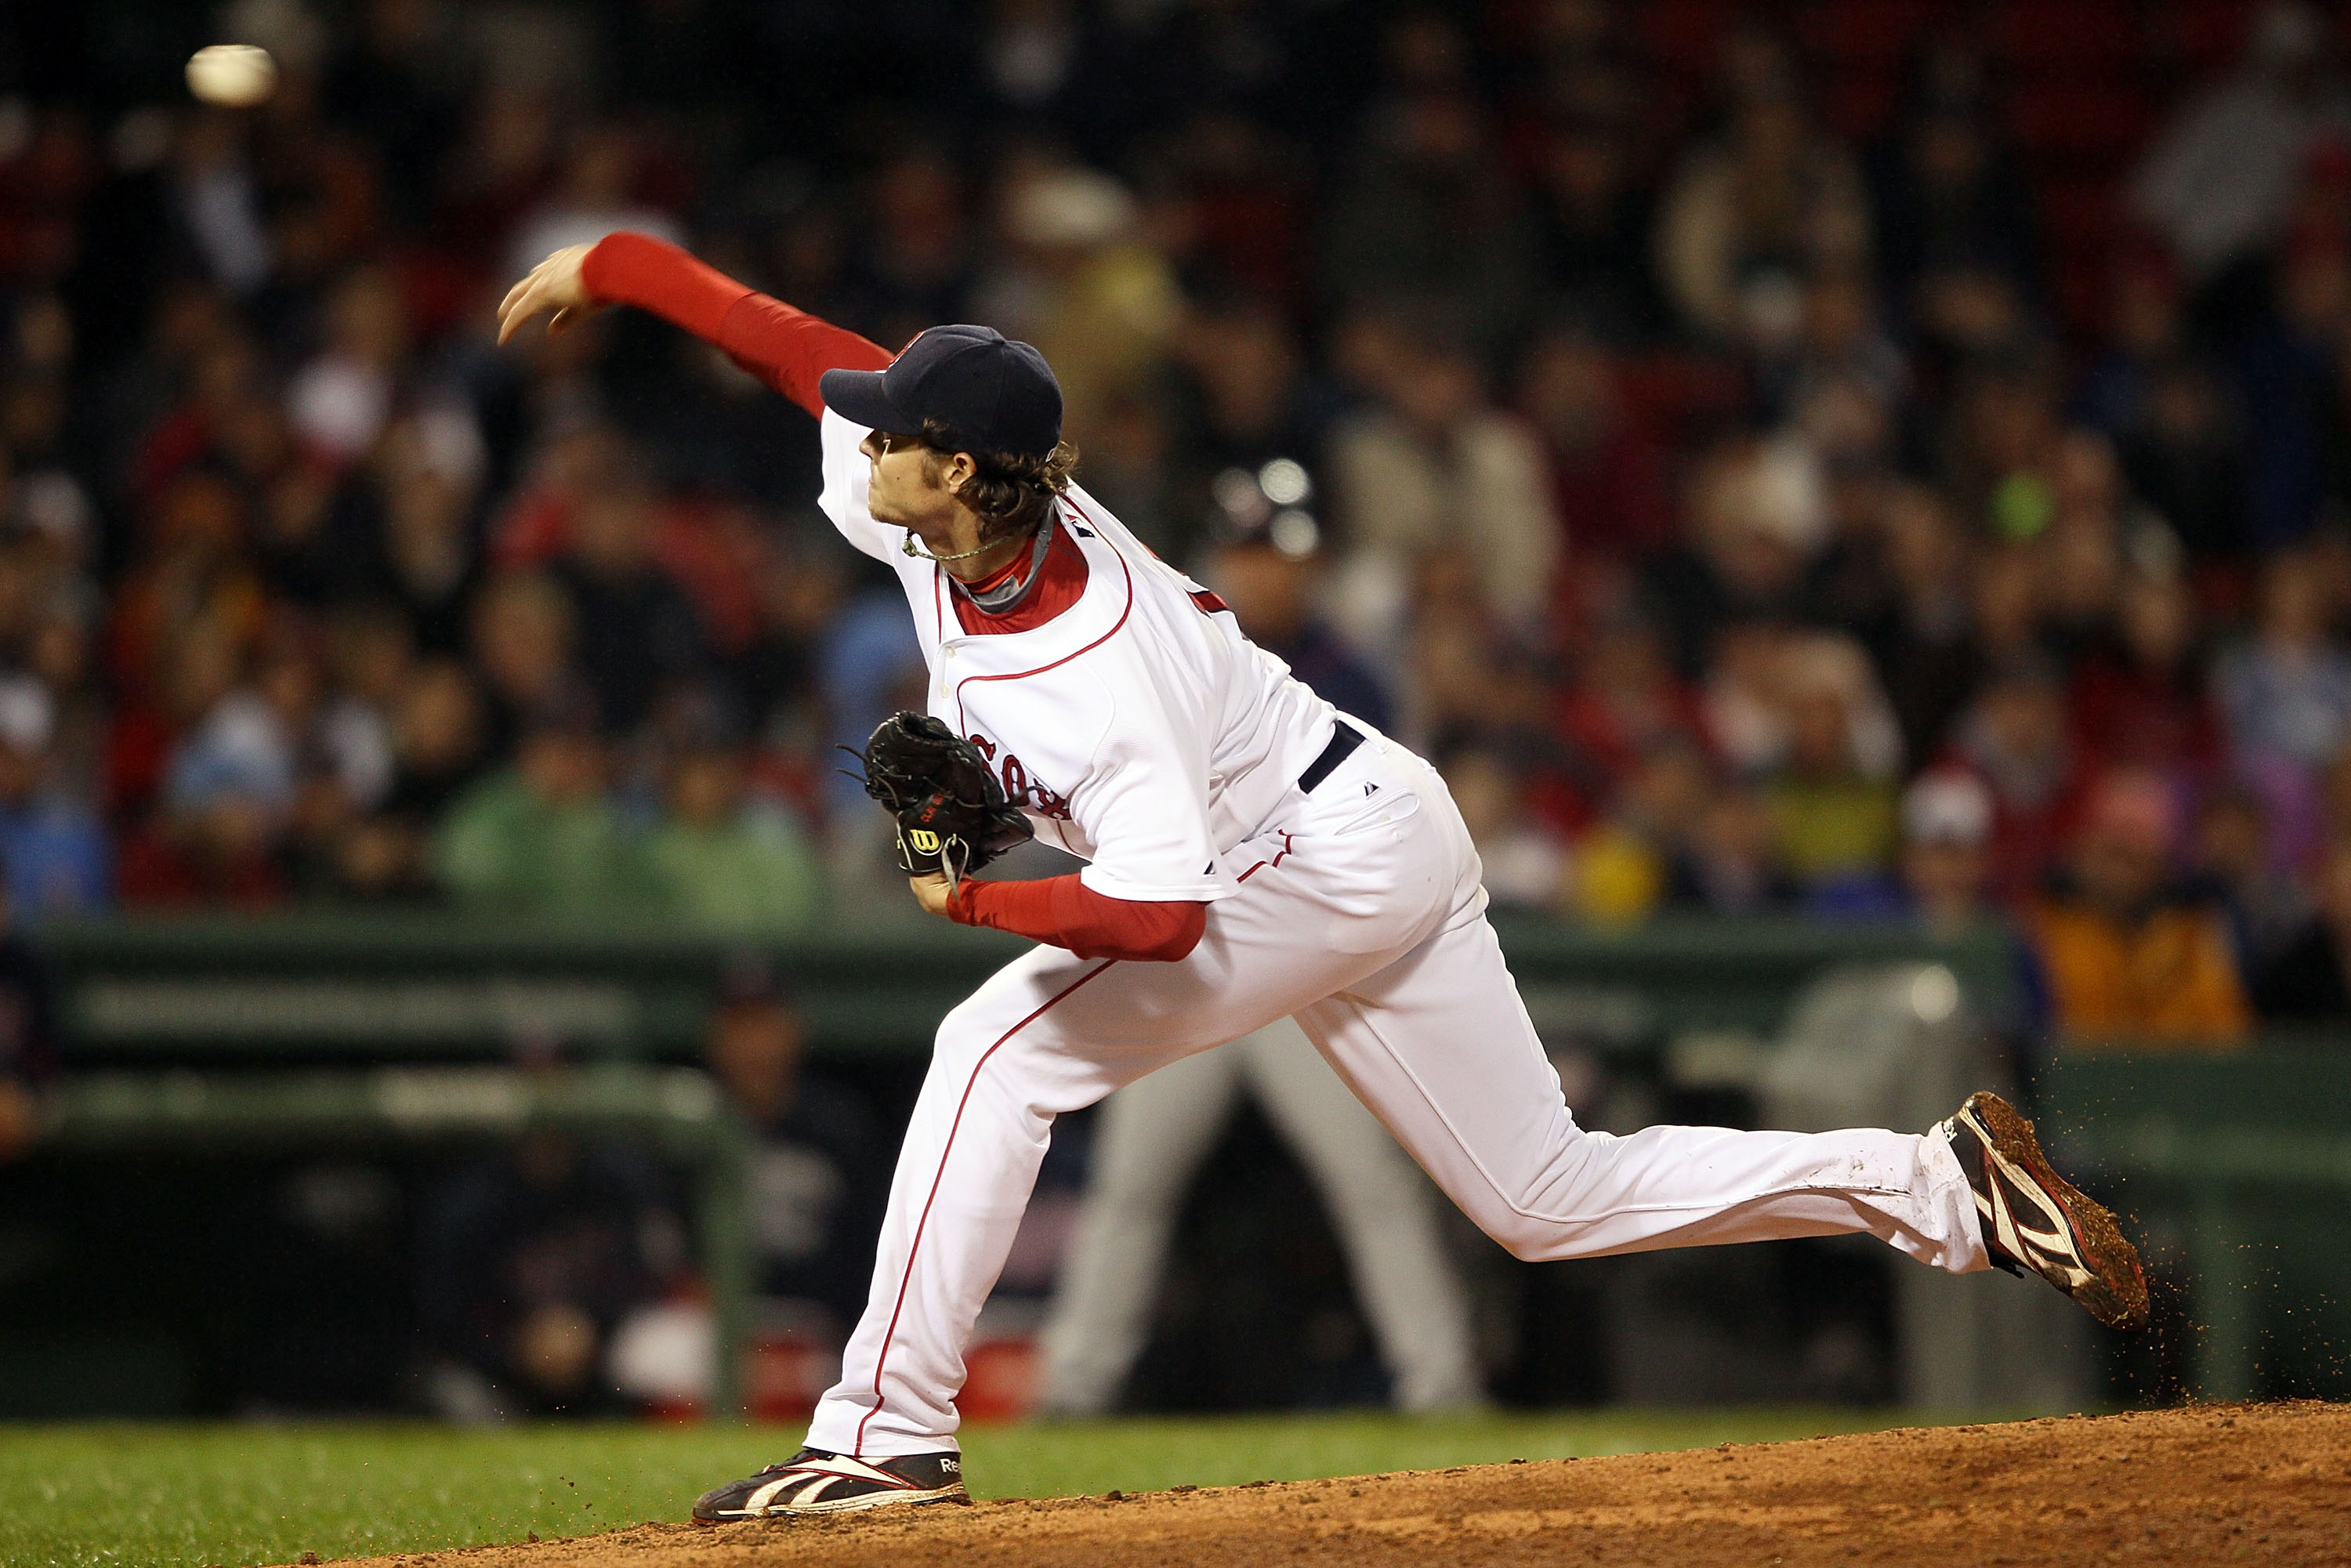 BOSTON - MAY 19:  Clay Buchholz #11 of the Boston Red Sox delivers a pitch in the top of the ninth inning against the Minnesota Twins on May 19, 2010 at Fenway Park in Boston, Massachusetts.  (Photo by Elsa/Getty Images)